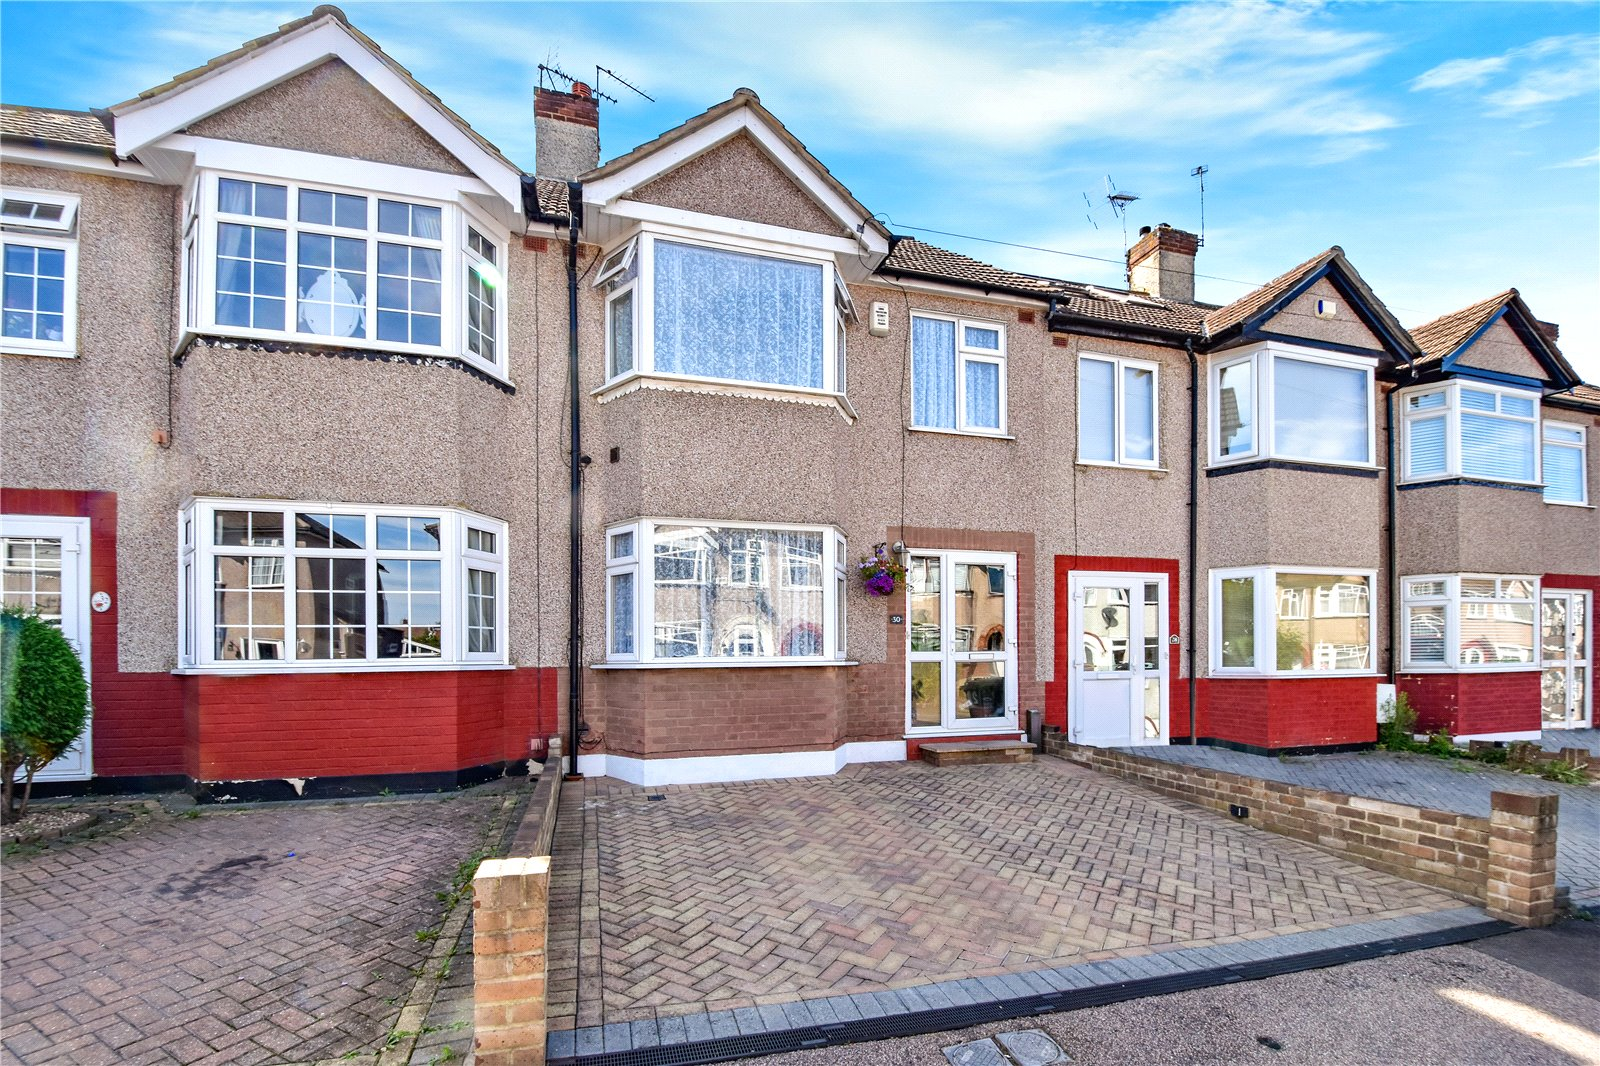 Dorchester Close, Dartford, Kent, DA1